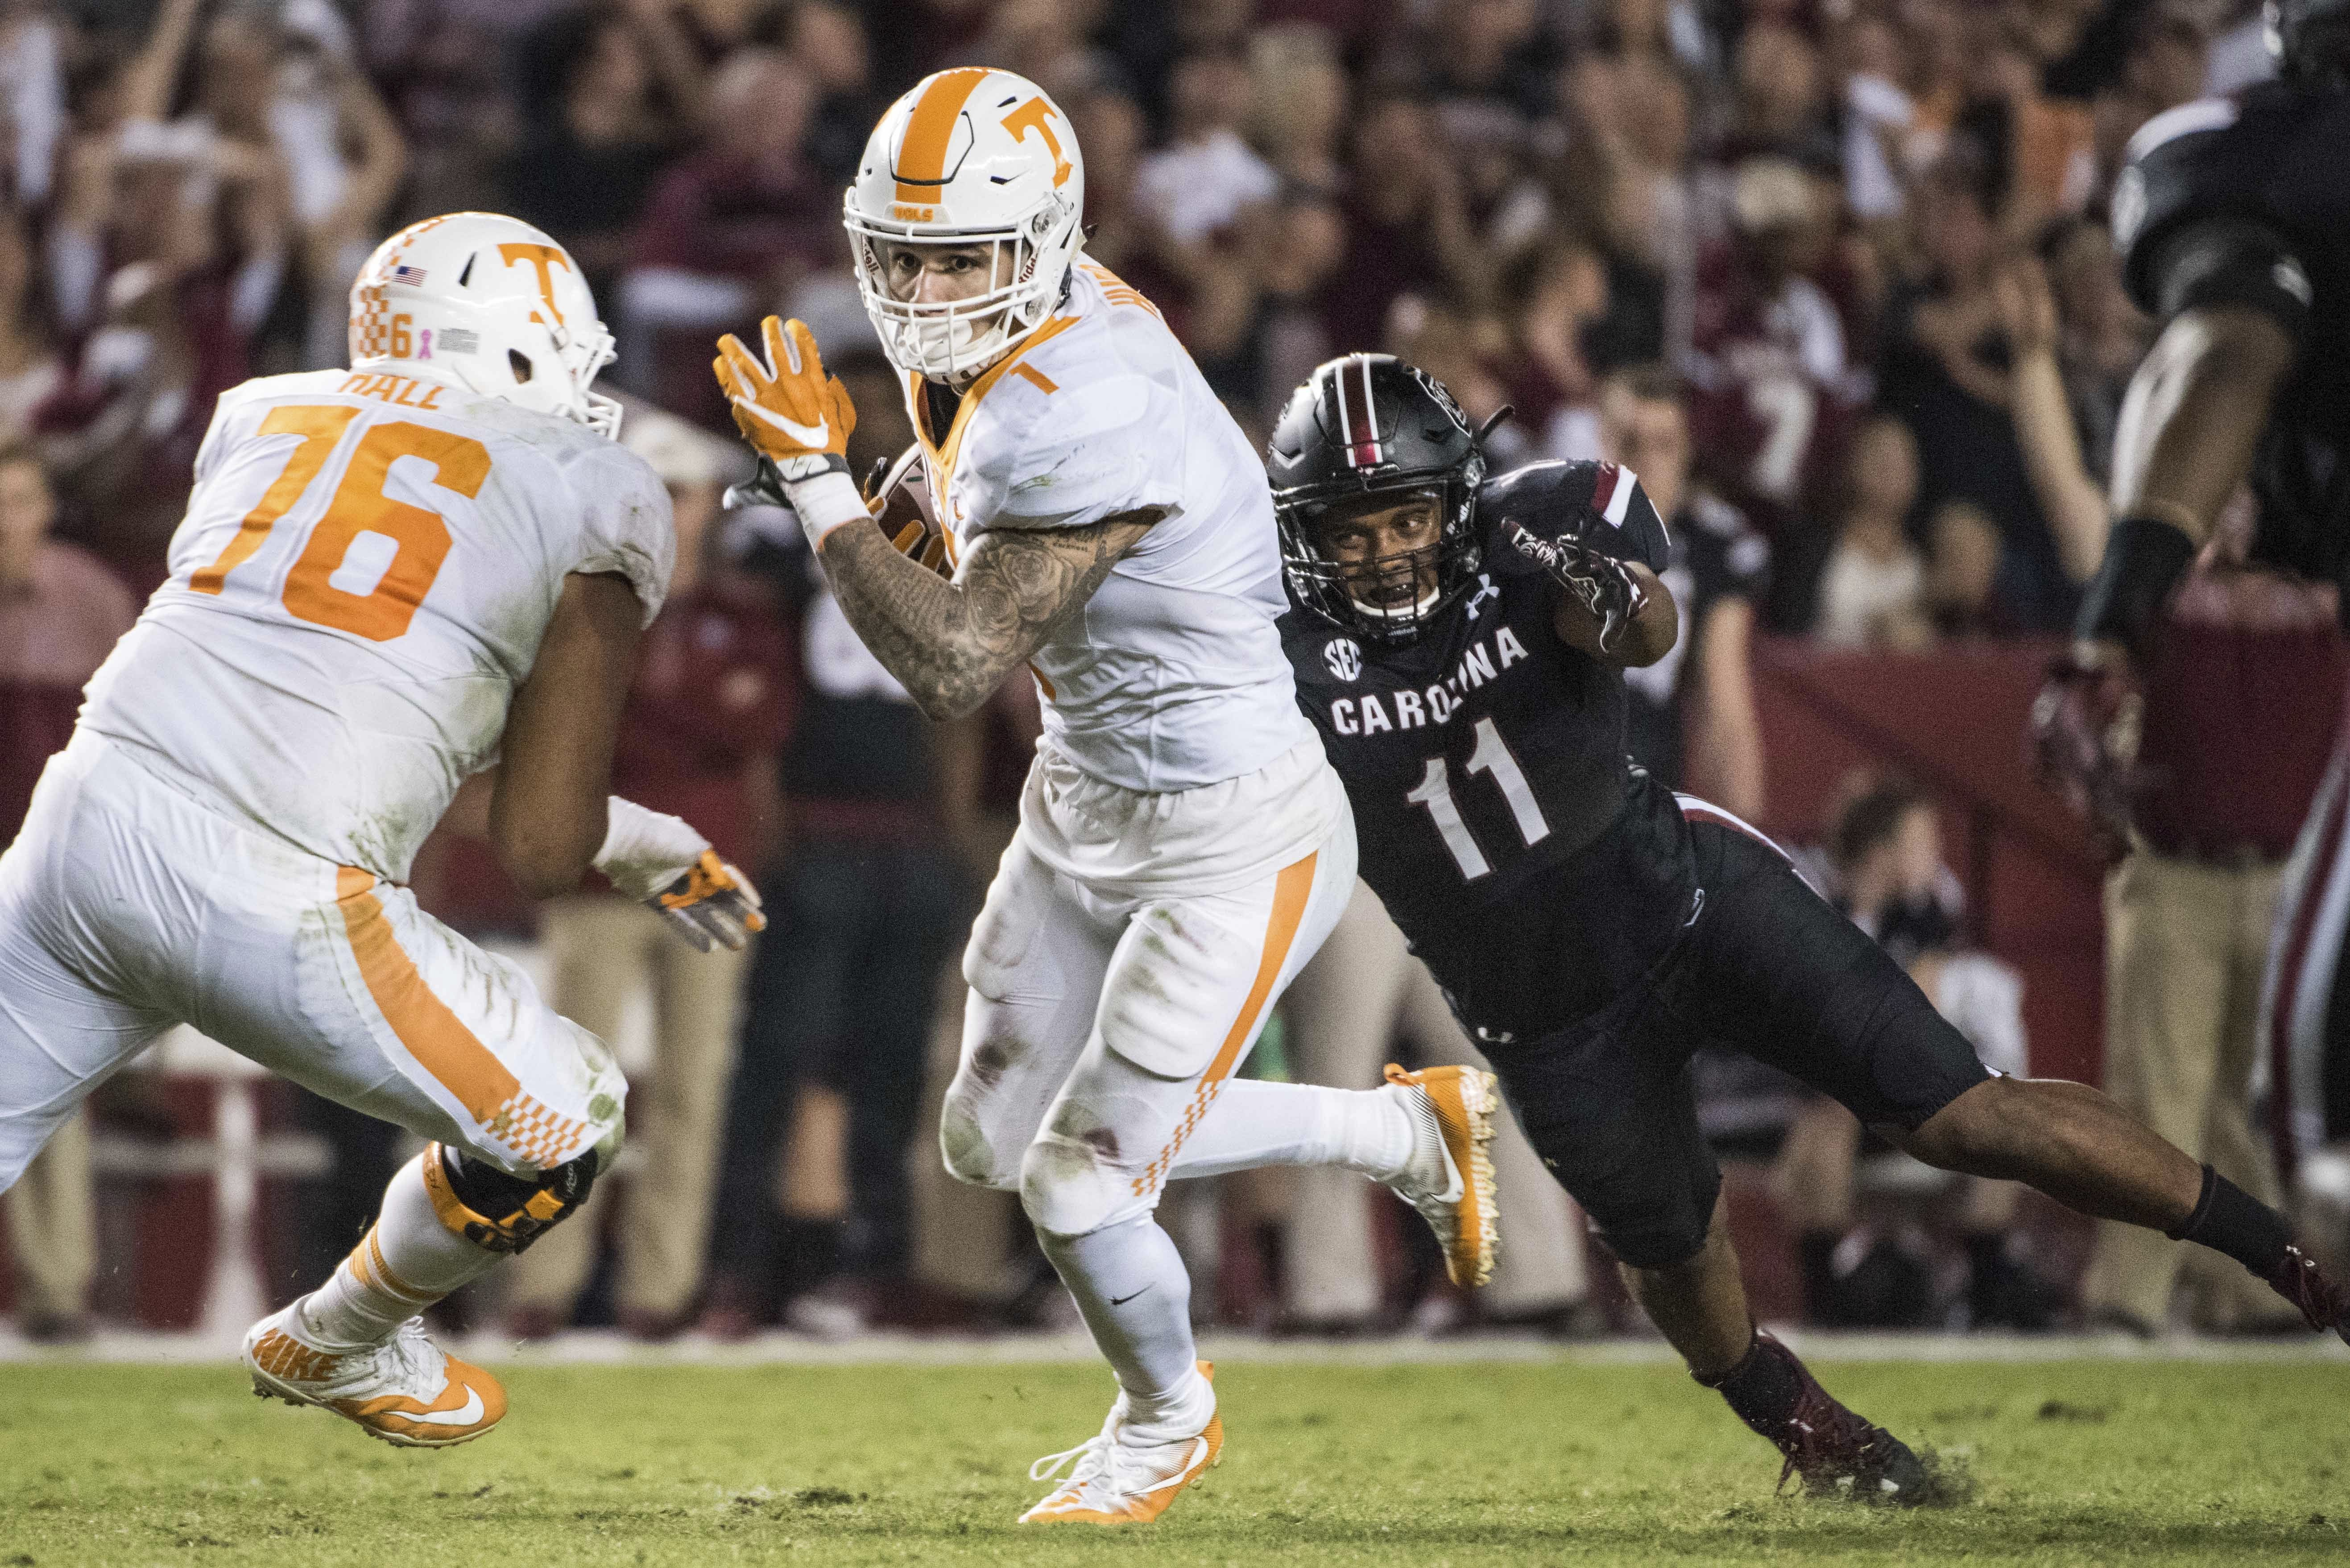 Tennessee running back Jalen Hurd (1) attempts to elude South Carolina linebacker T.J. Holloman (11) during the first half of an NCAA college football game Saturday, Oct. 29, 2016, in Columbia, S.C. South Carolina defeated Tennessee 24-21. (AP Photo/Sean